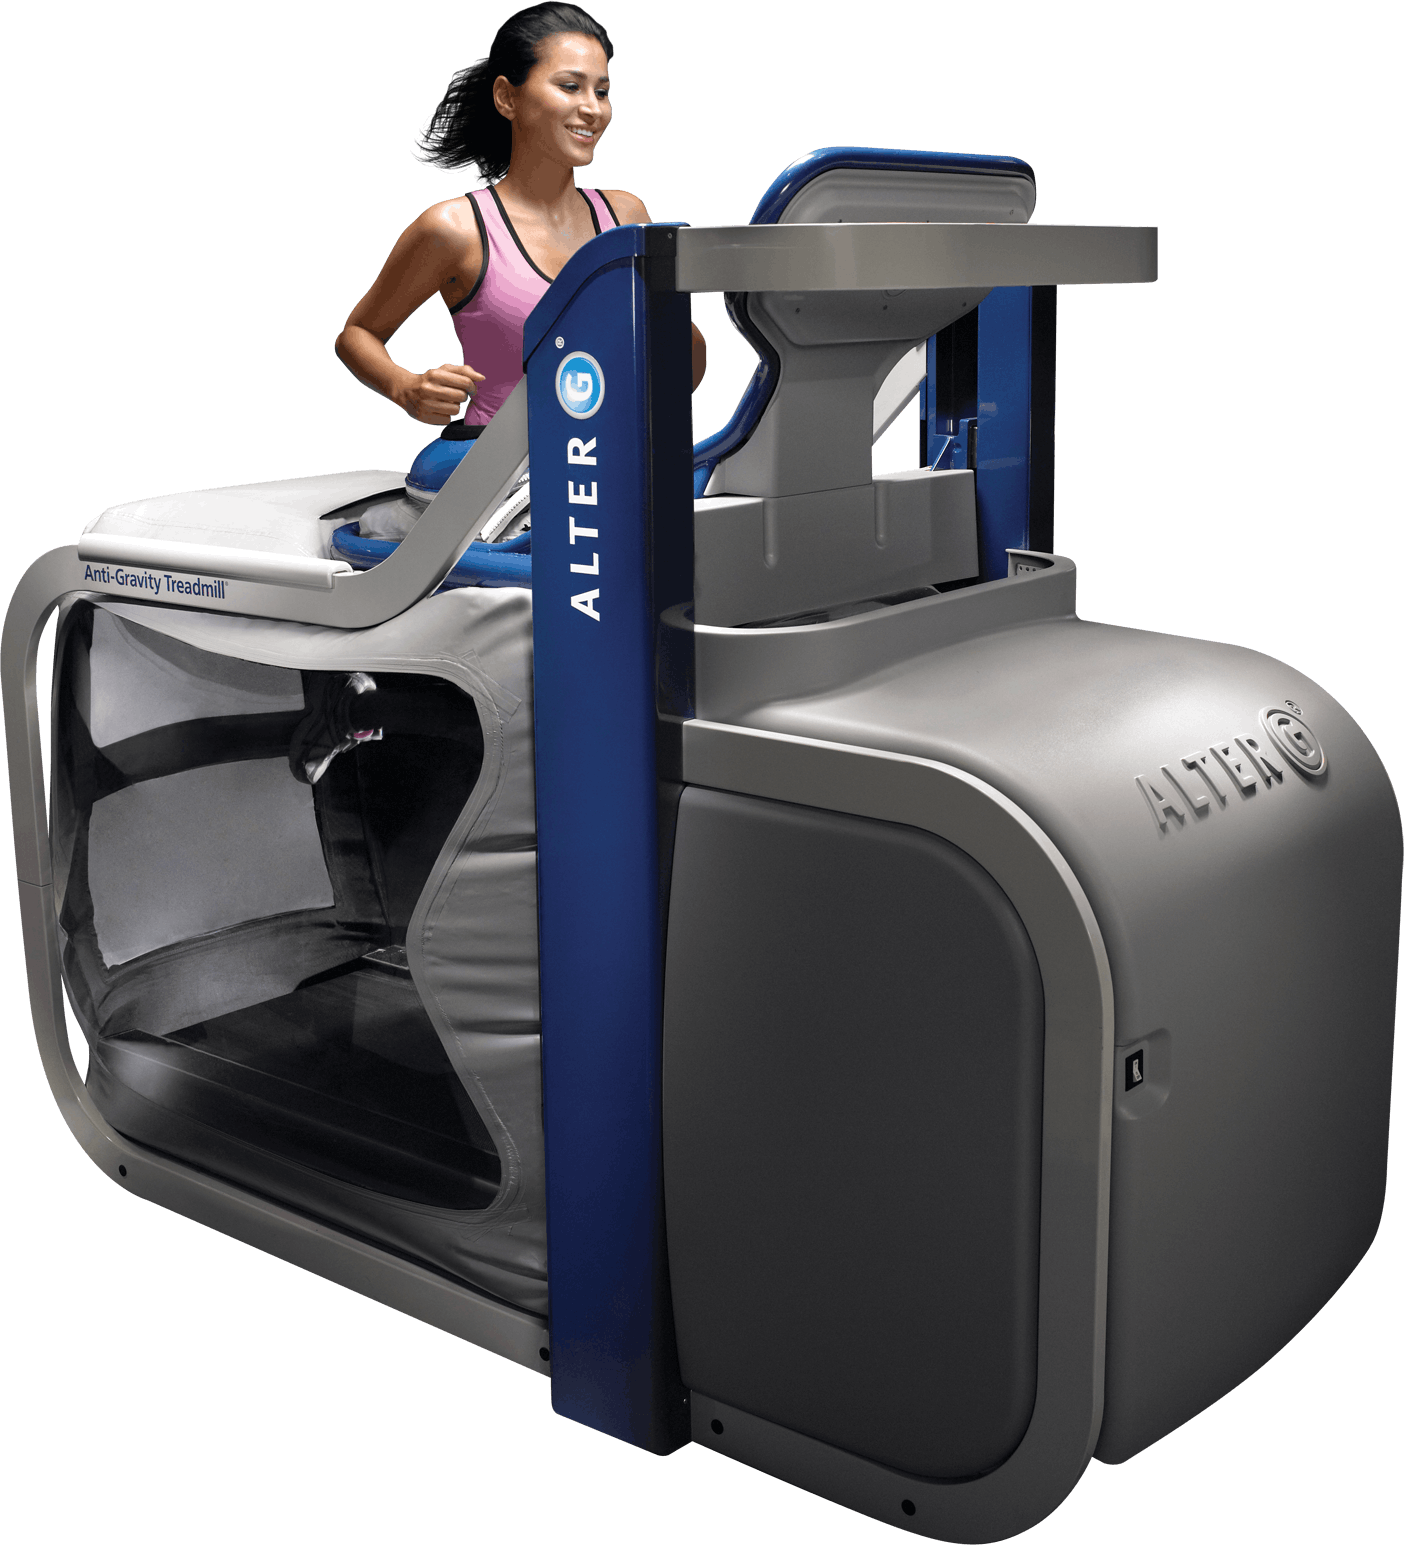 Image result for alter g anti-gravity treadmill